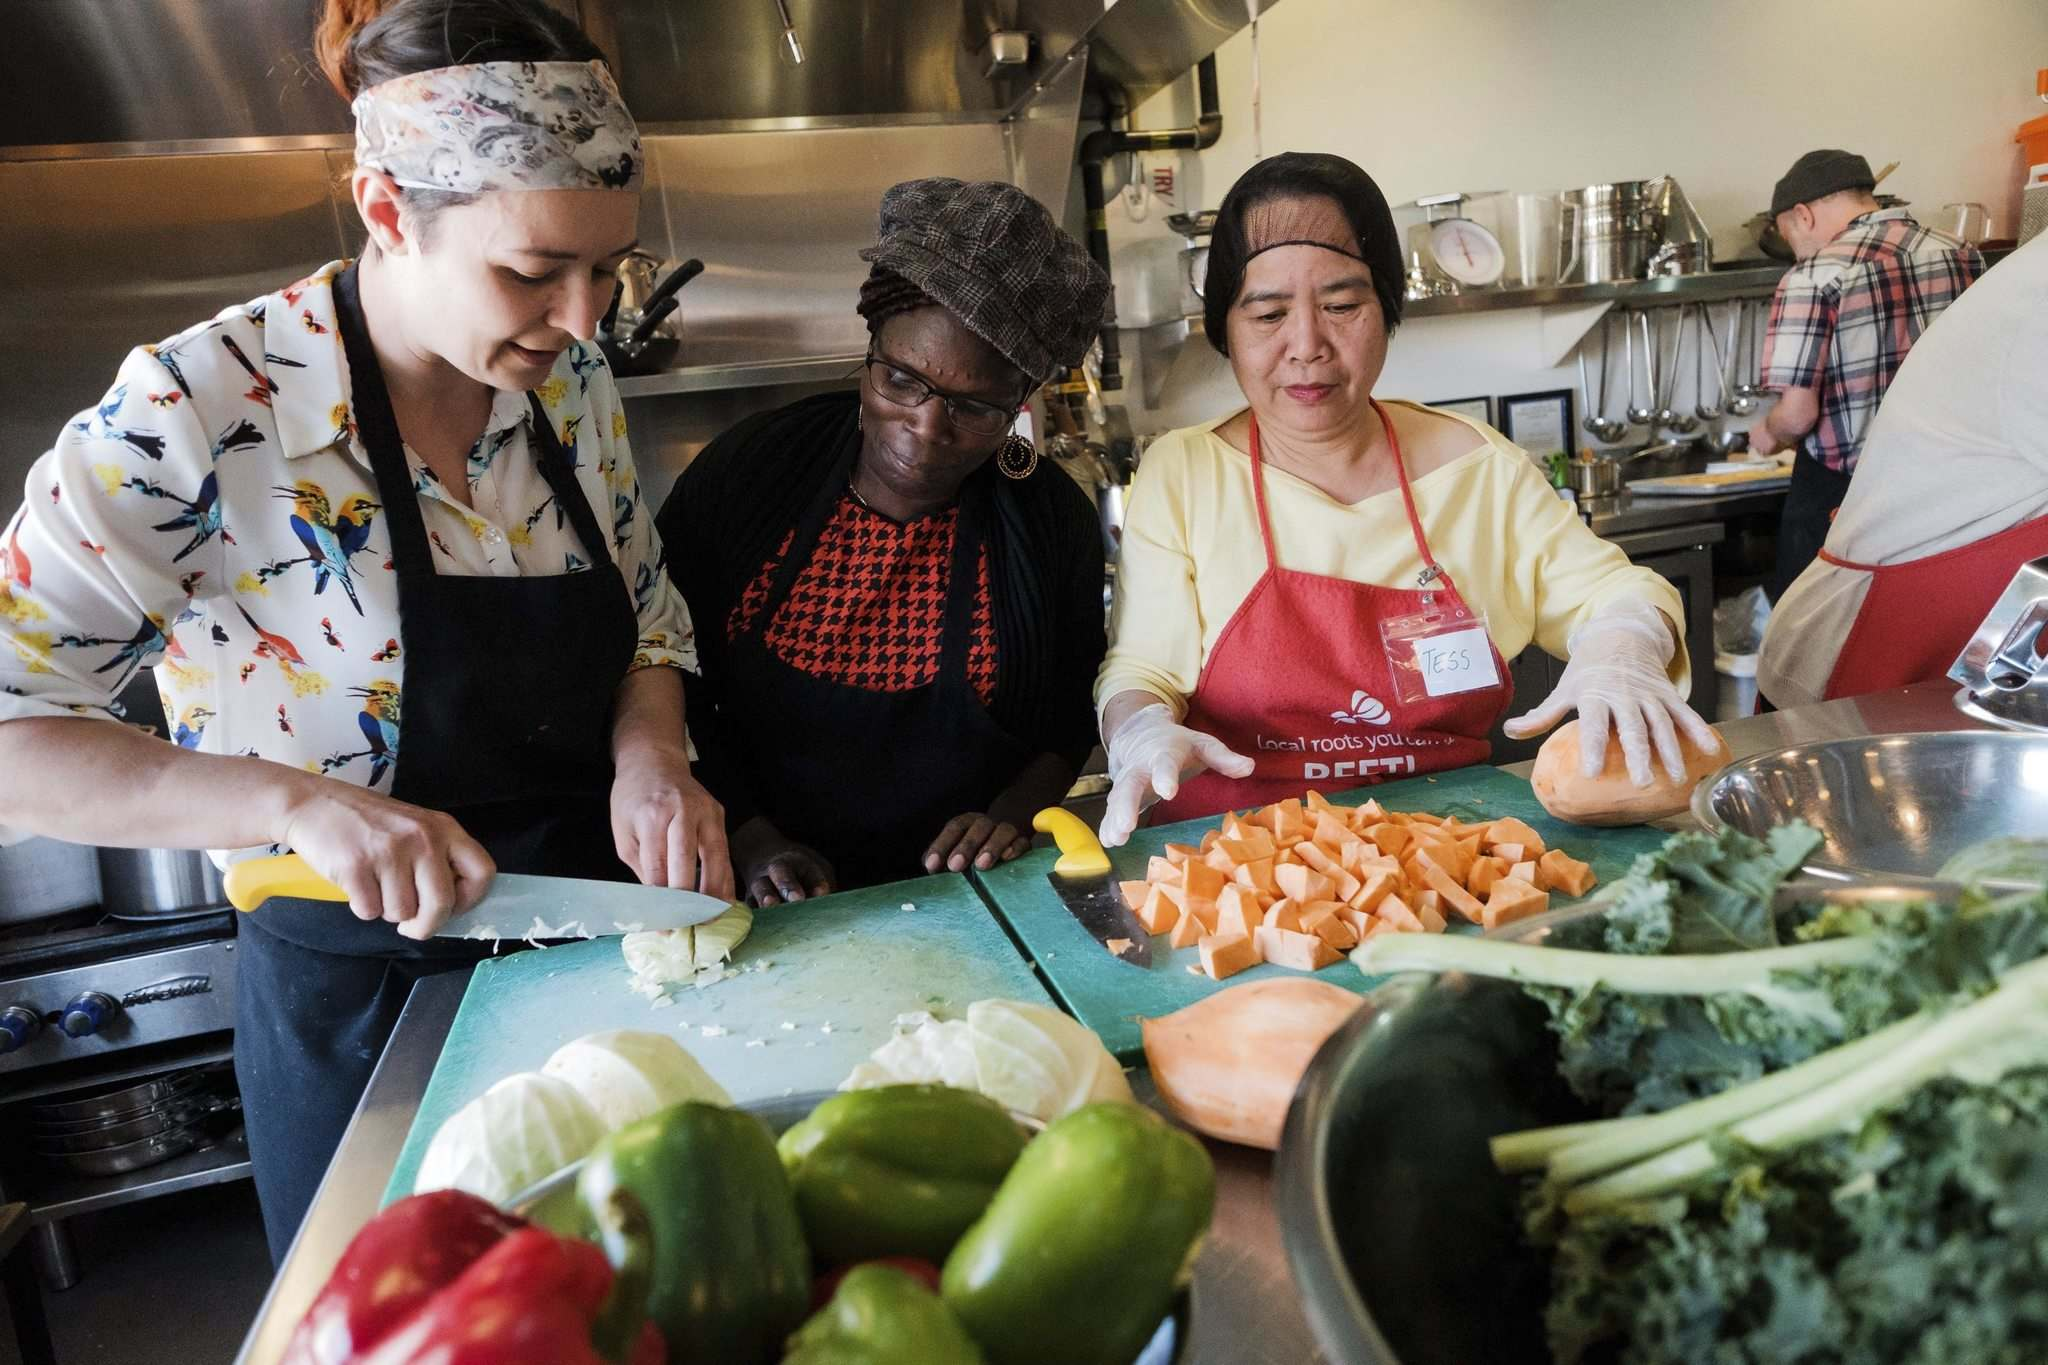 Daniel Crump / Winnipeg Free Press</p><p>Chef Camille Metcalfe (left) prepares vegetables with volunteers, Mary Adang (middle), and Terisita Estoesta (right) at the Norwest Co-op Community Food Centre. </p>